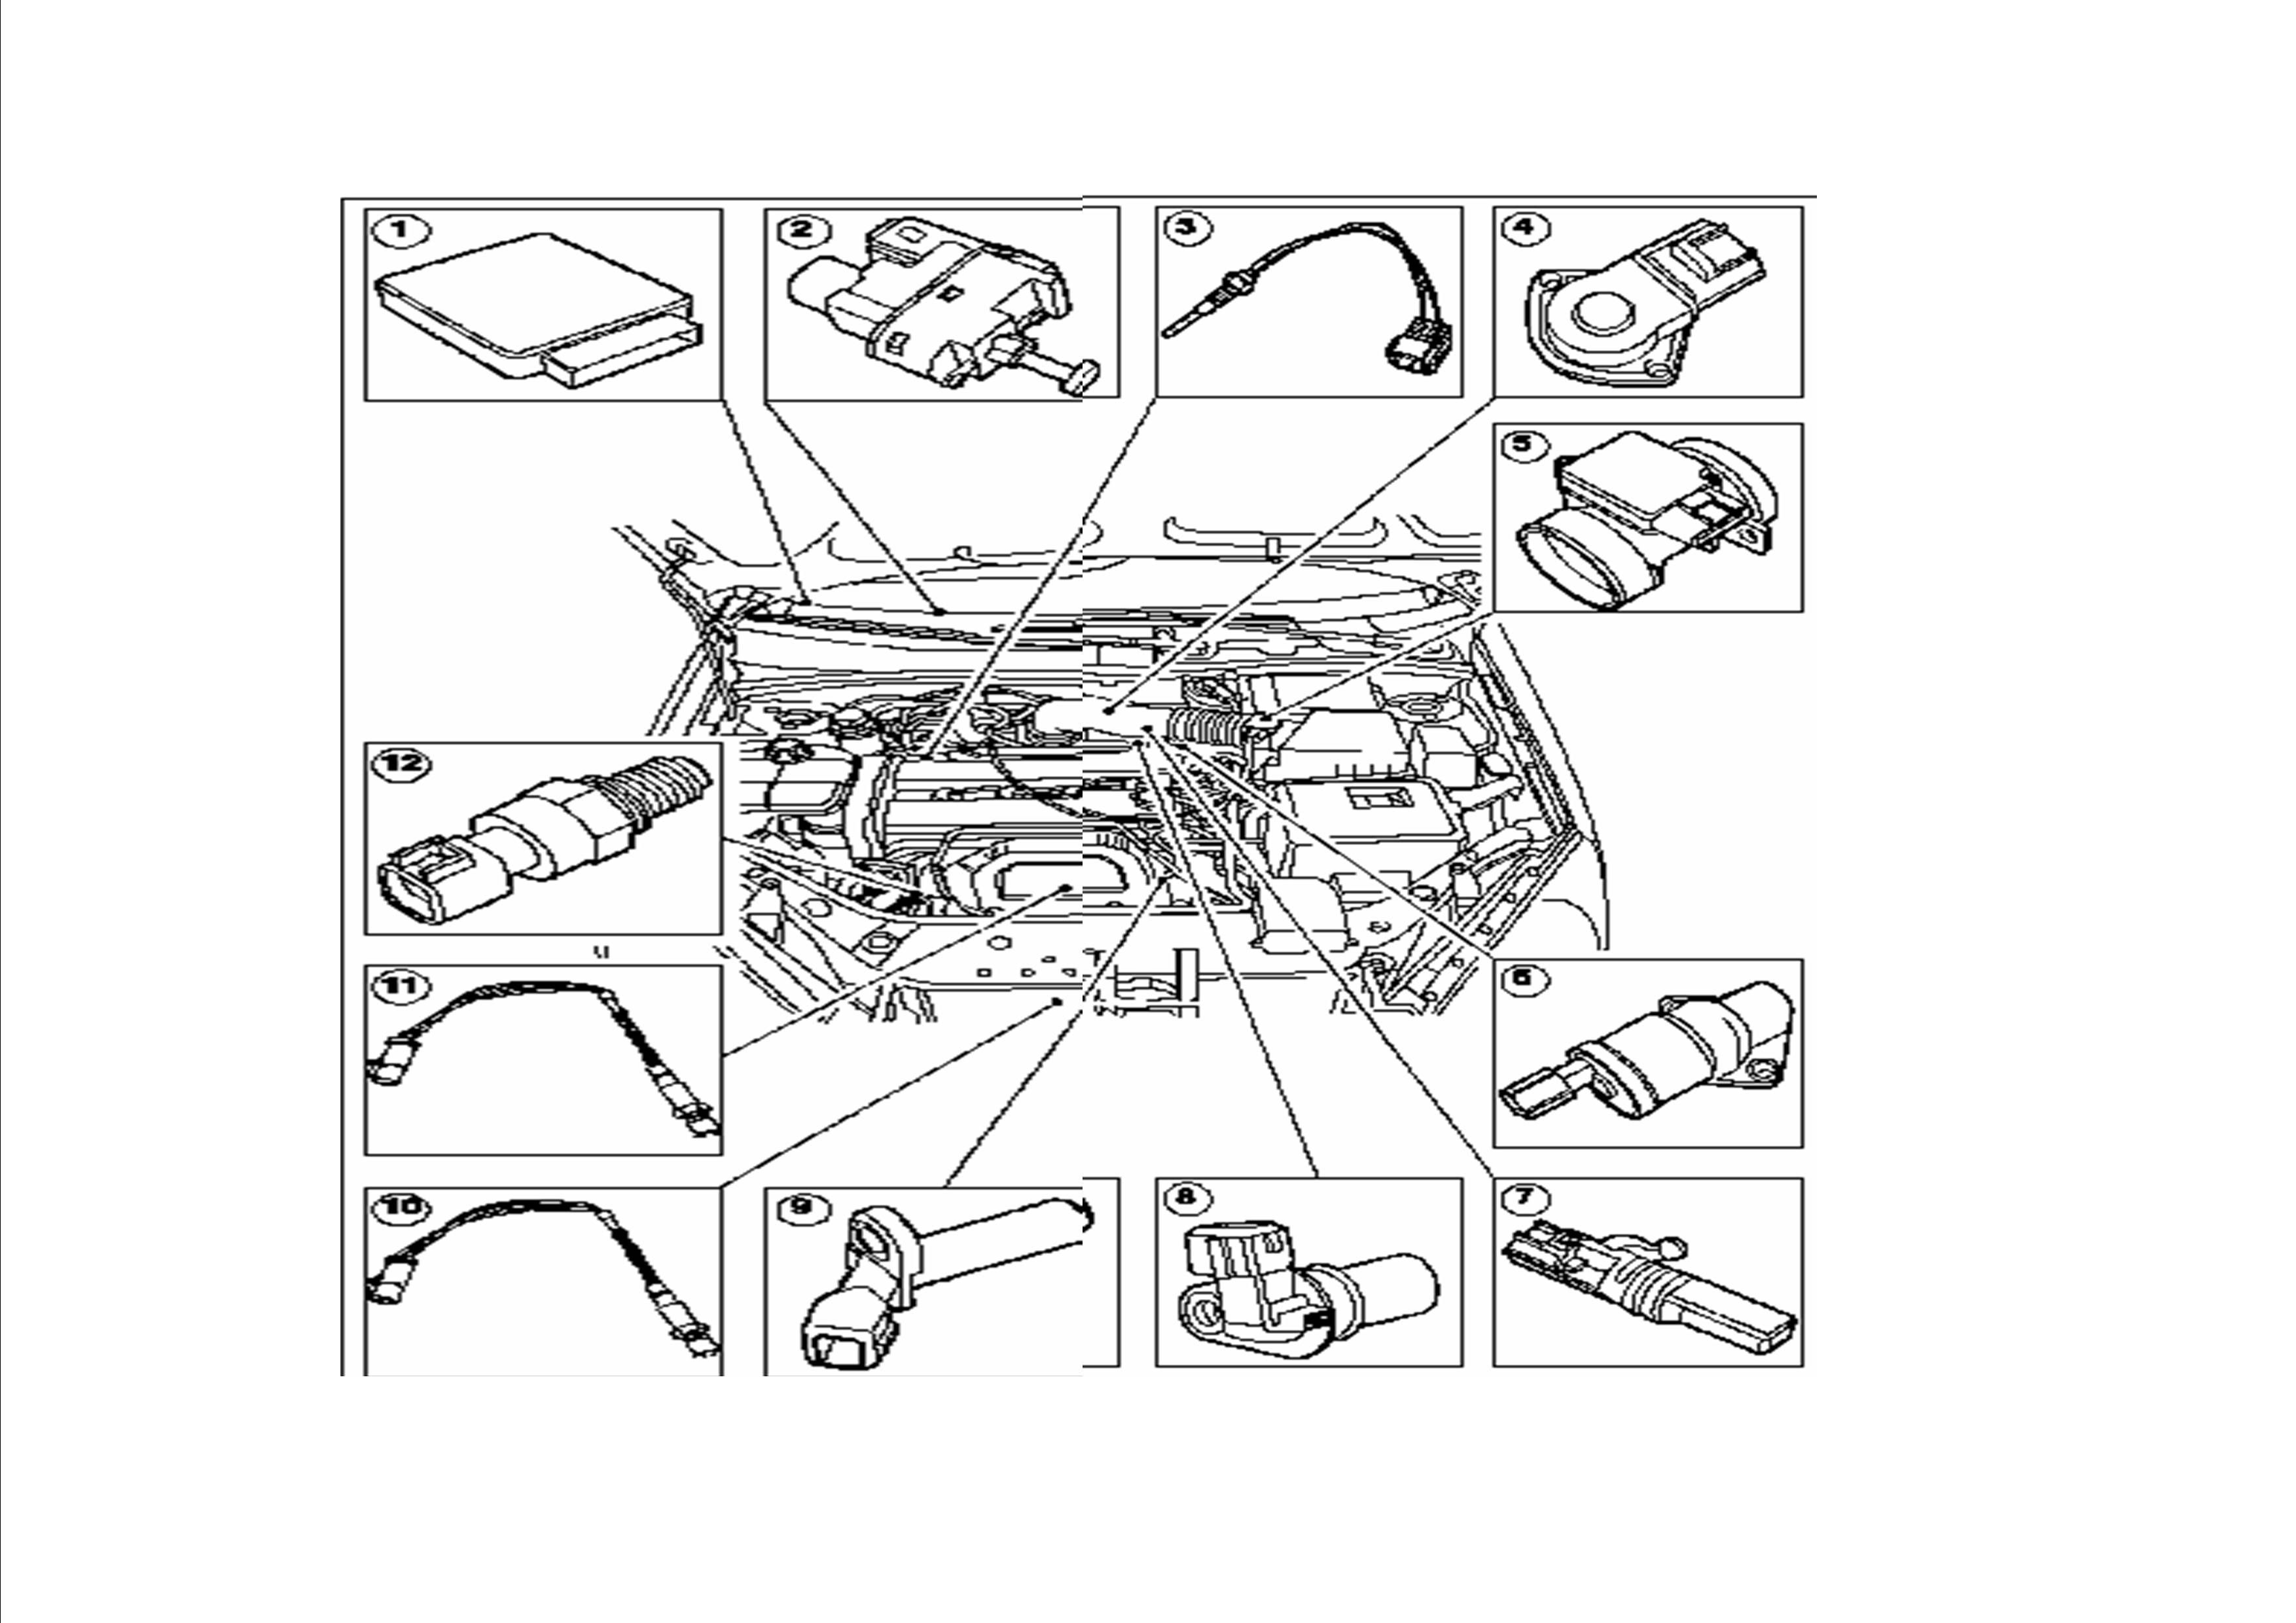 Ford Focus Zts Dohc Manual Wiring Diagram